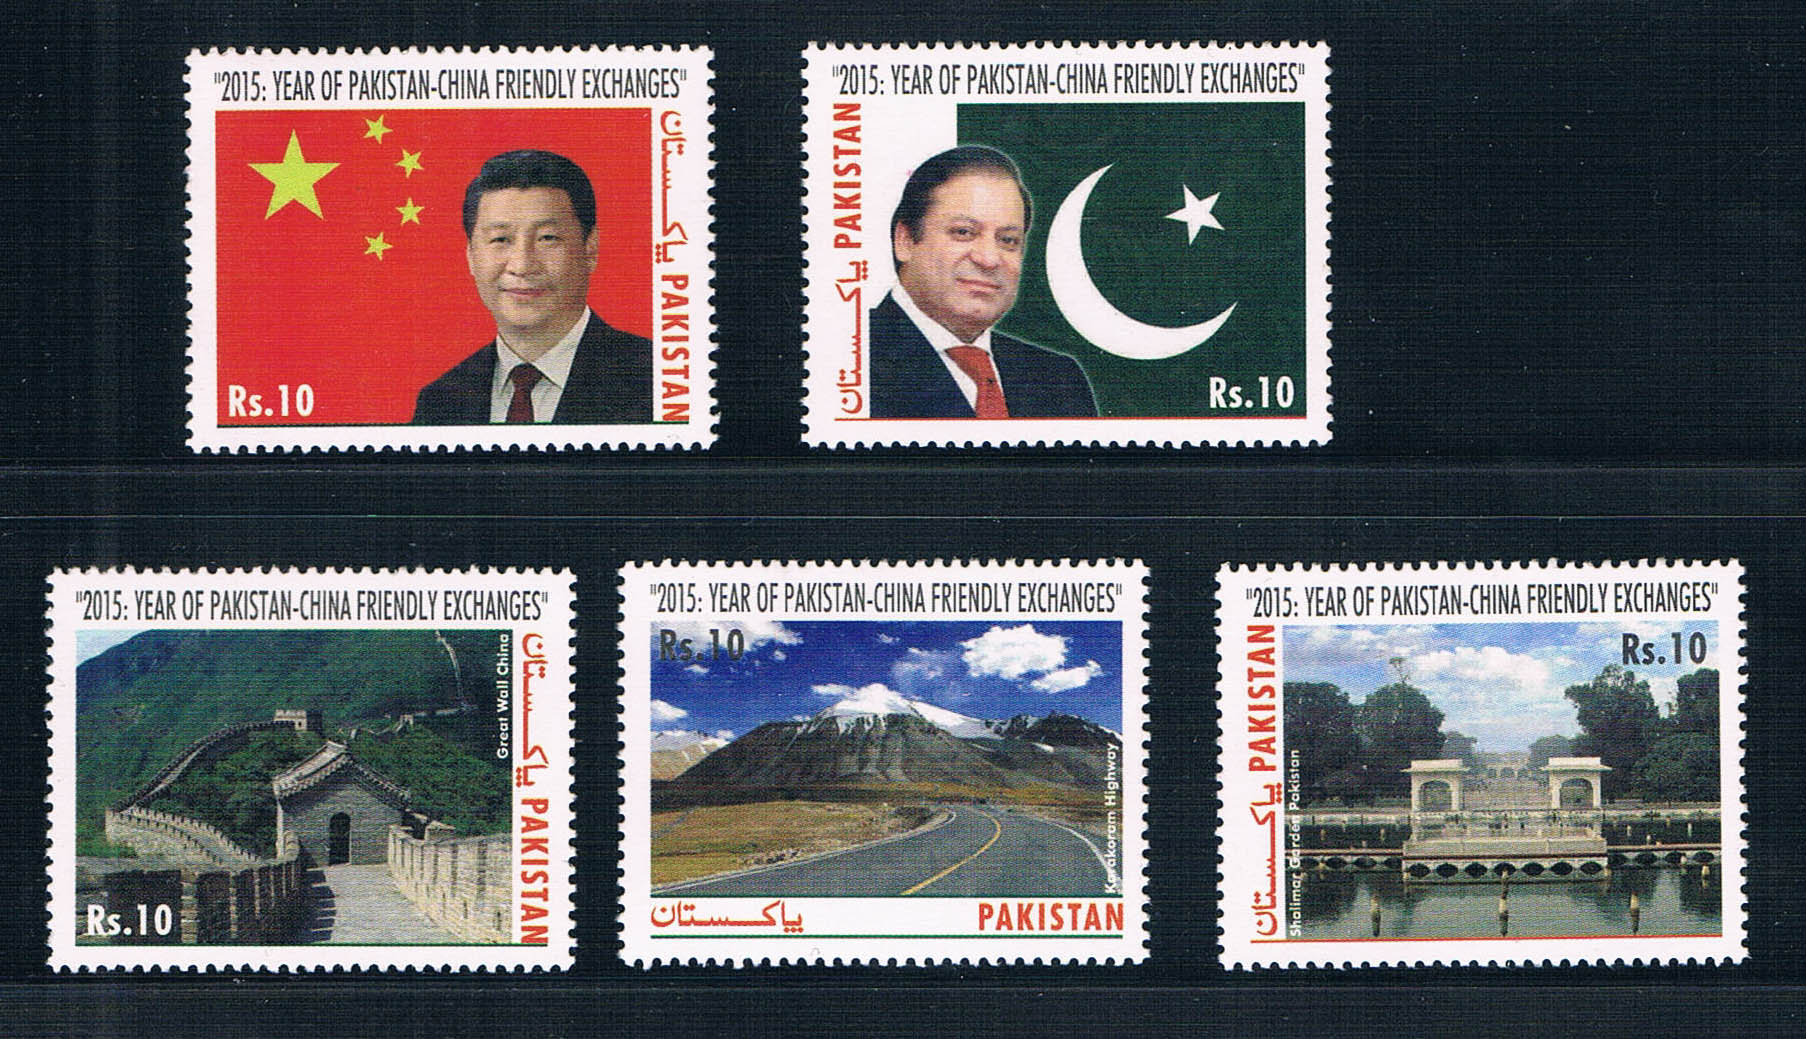 CM0605 Pakistan 2015 years of friendly exchanges and China flag the Great Wall 5 new non ticket 1018 pakistan on the brink the future of pakistan afghanistan and the west